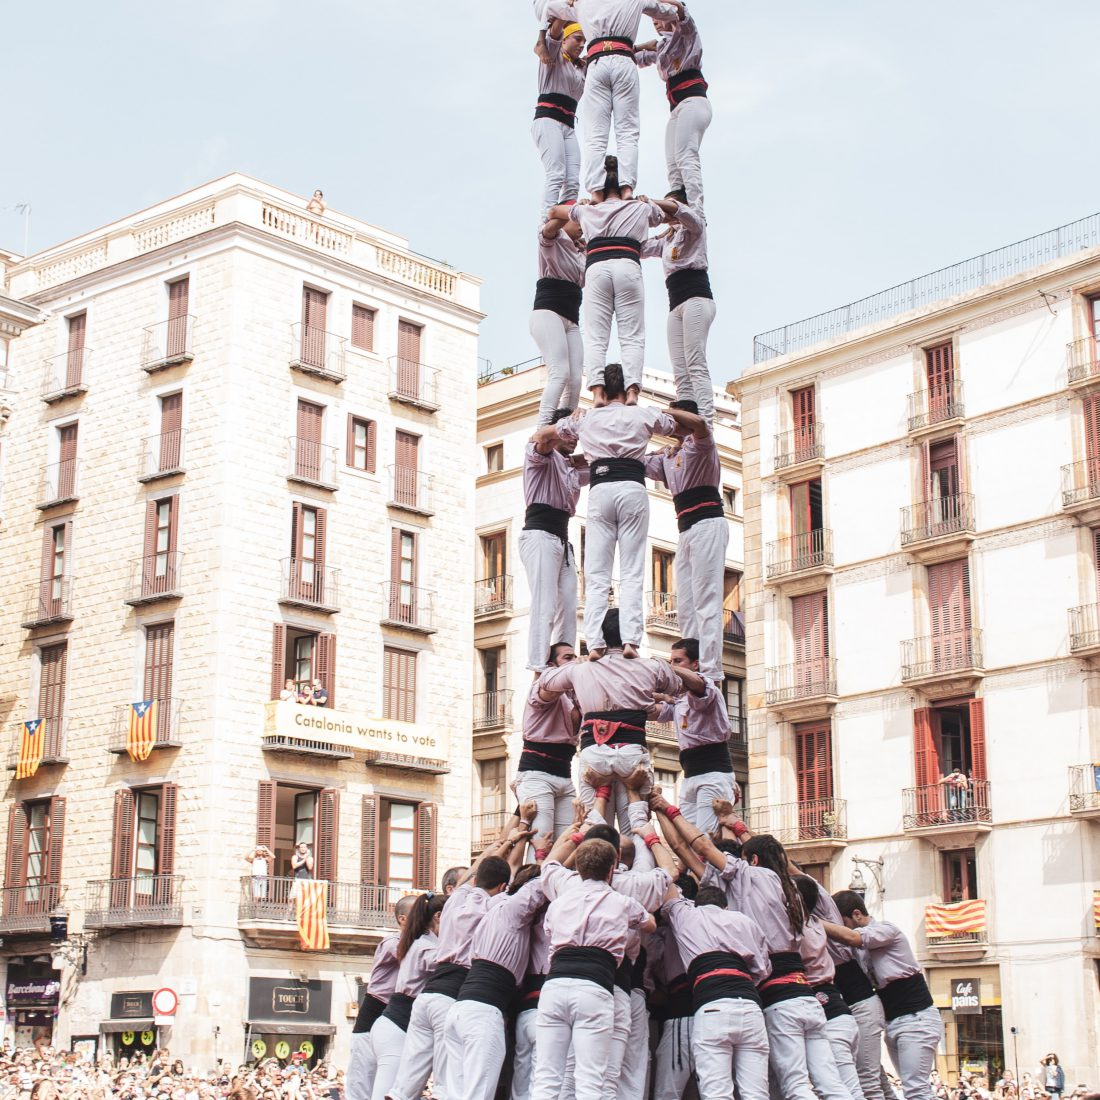 human tower event festivals Barcelona Catalonia